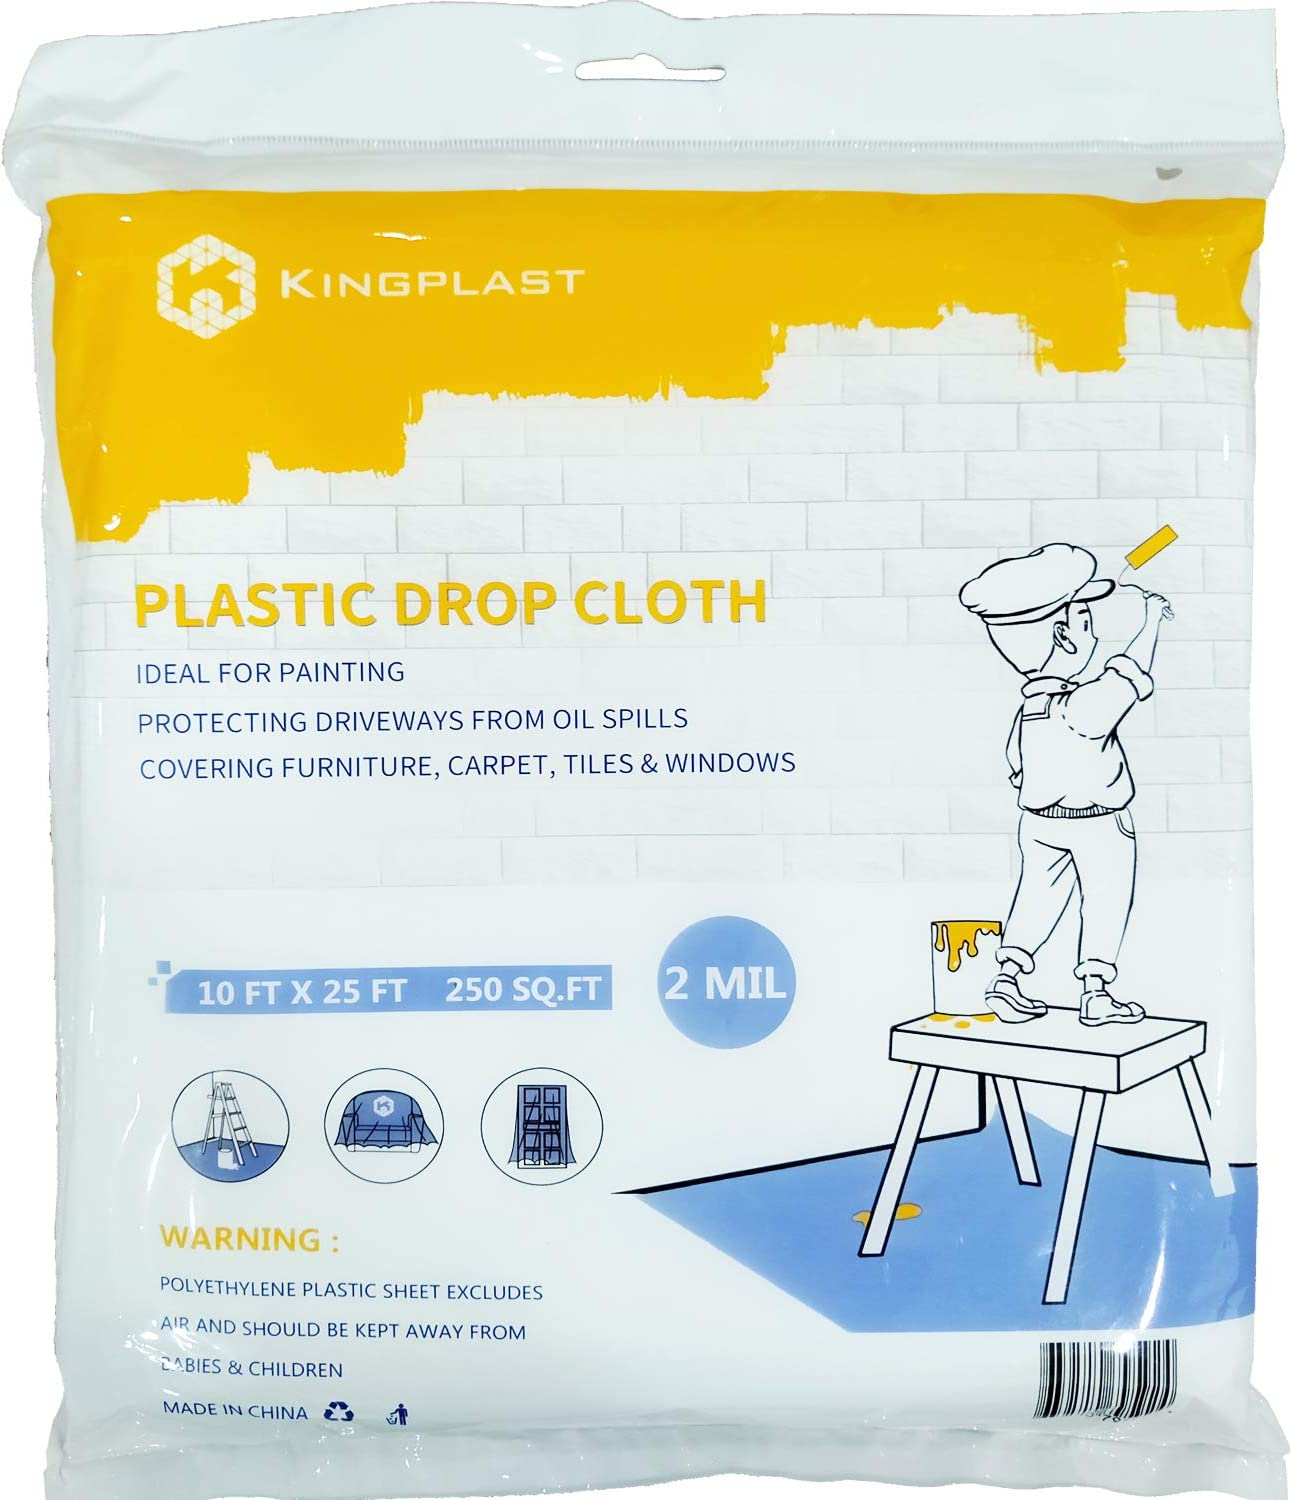 KINGPLAST Plastic Drop Cloth for Painting 10 x 25ft x 2mil Clear Painters Drop Sheet,Waterproof Plastic Painting Tarp for Floor Covering